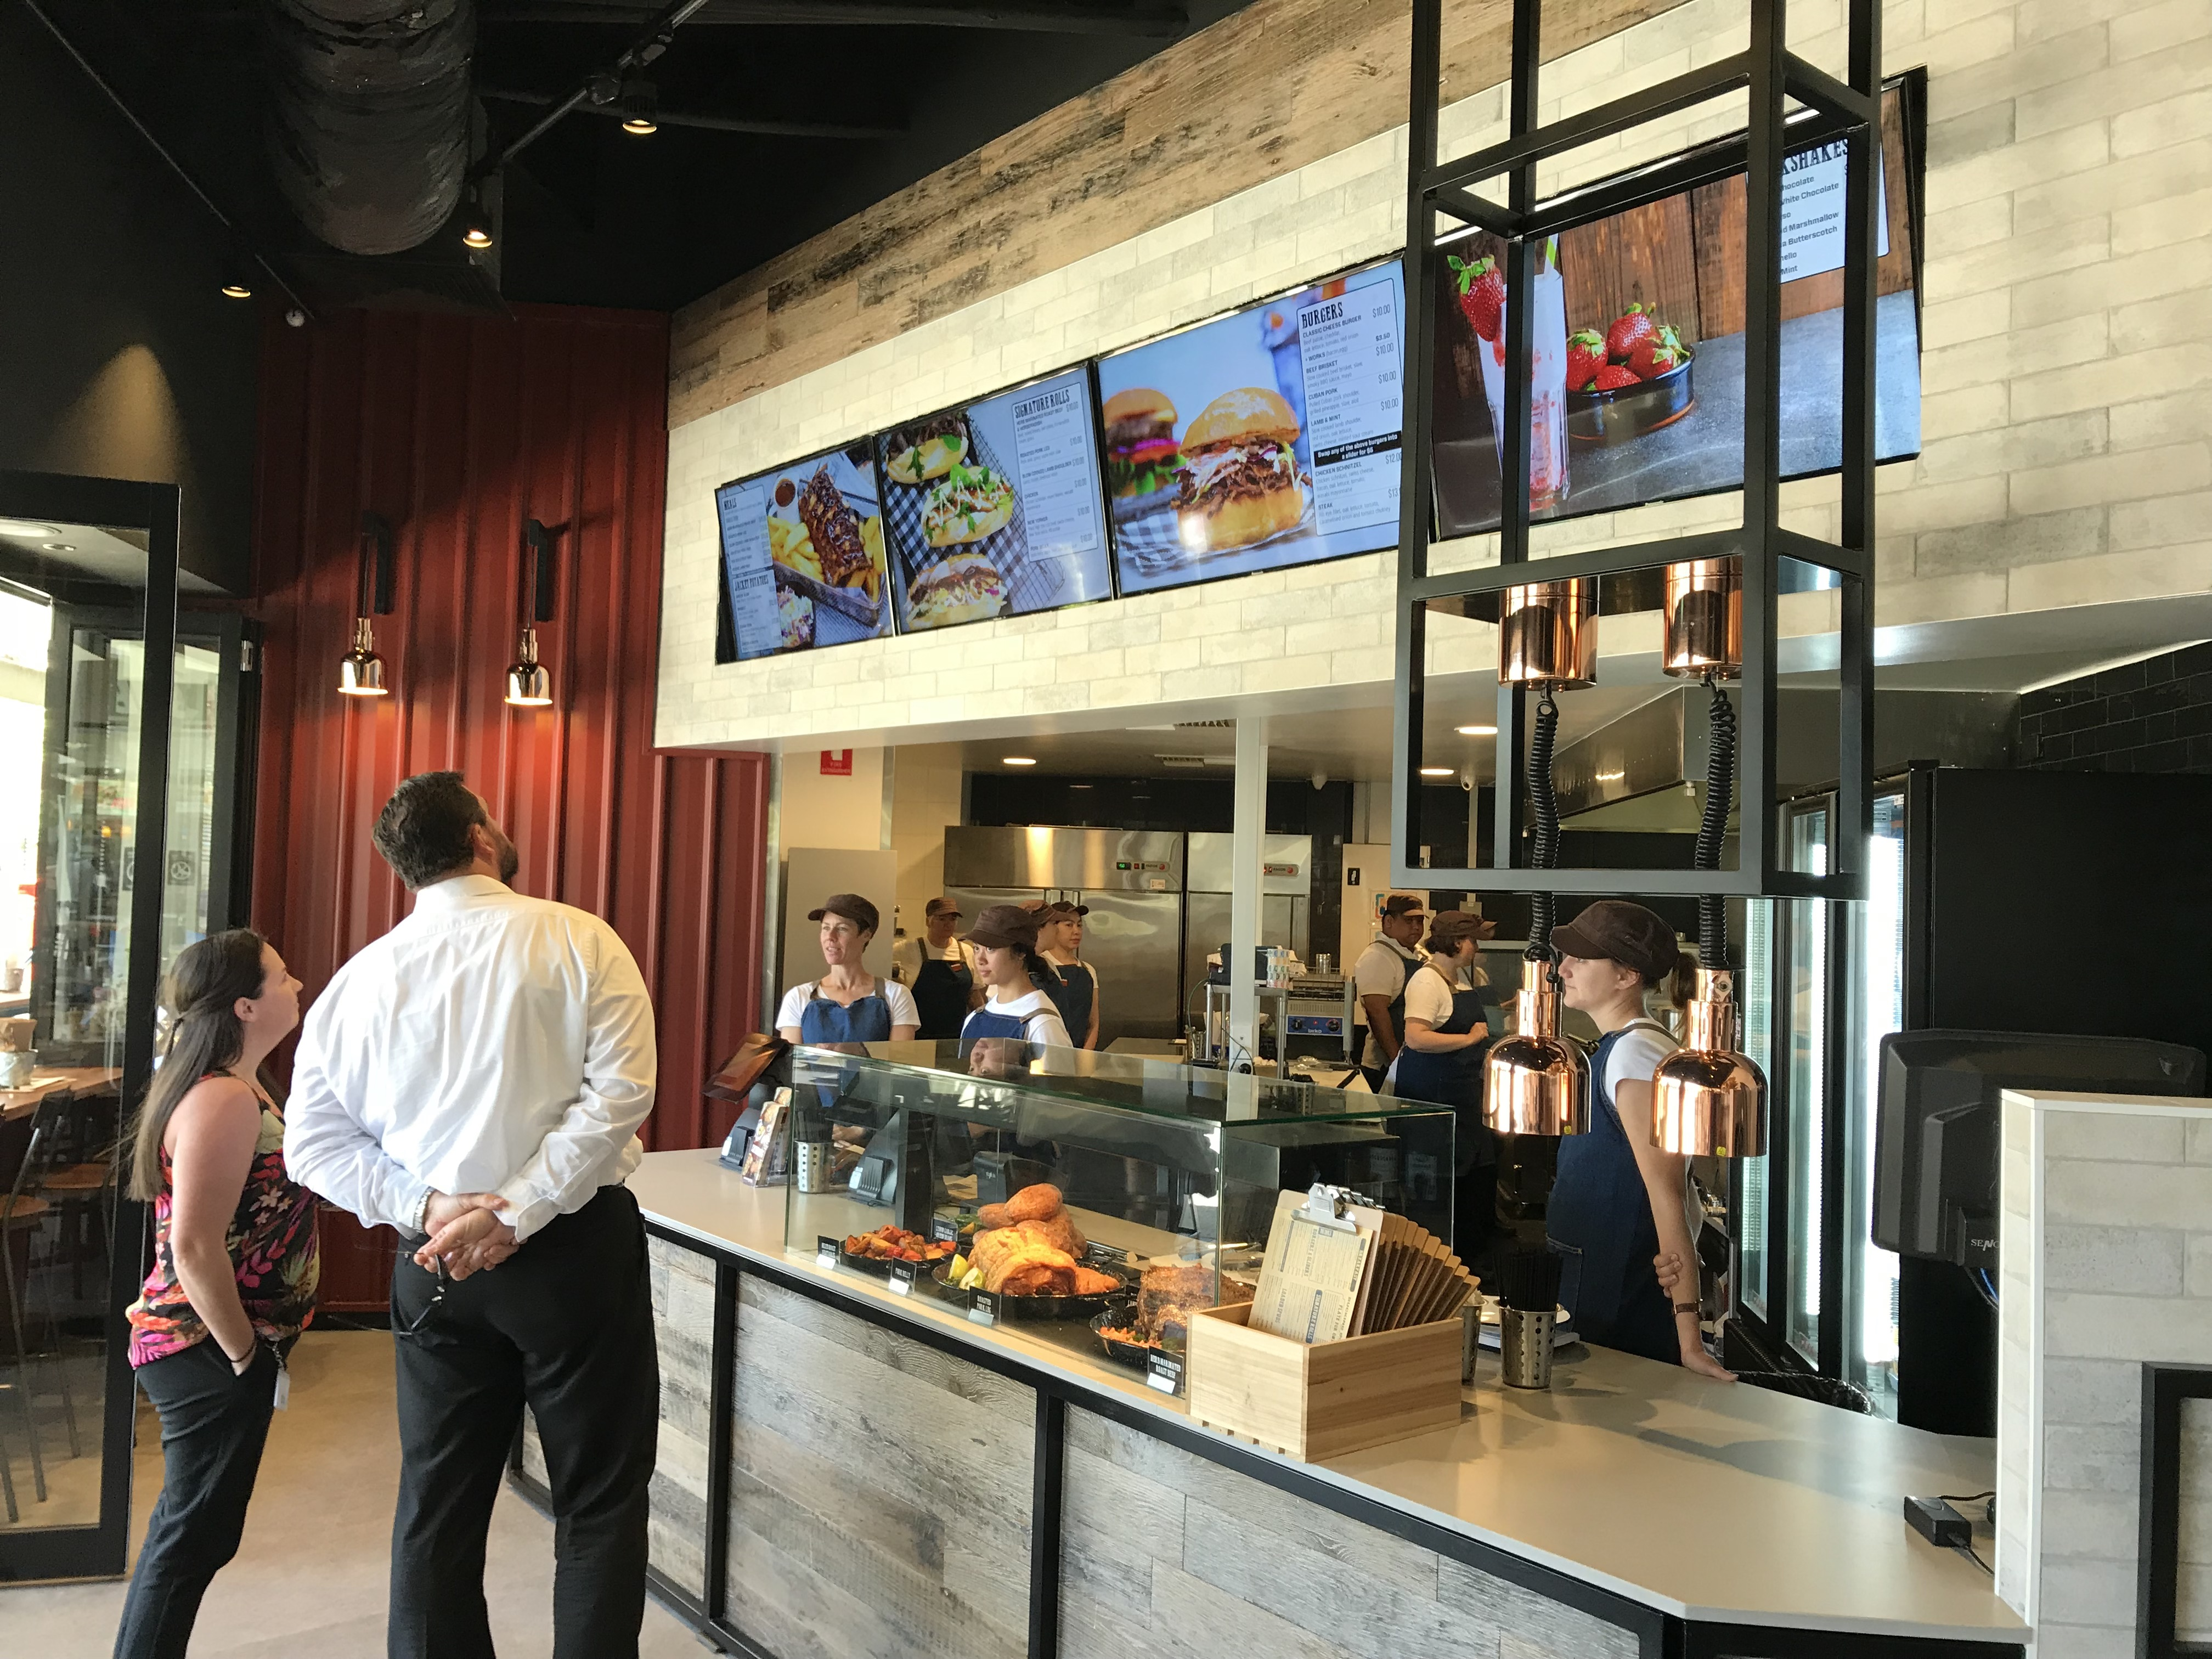 bucking-bull-roast-experts-fast-food-franchise-albany-highway-east-vic-park-6